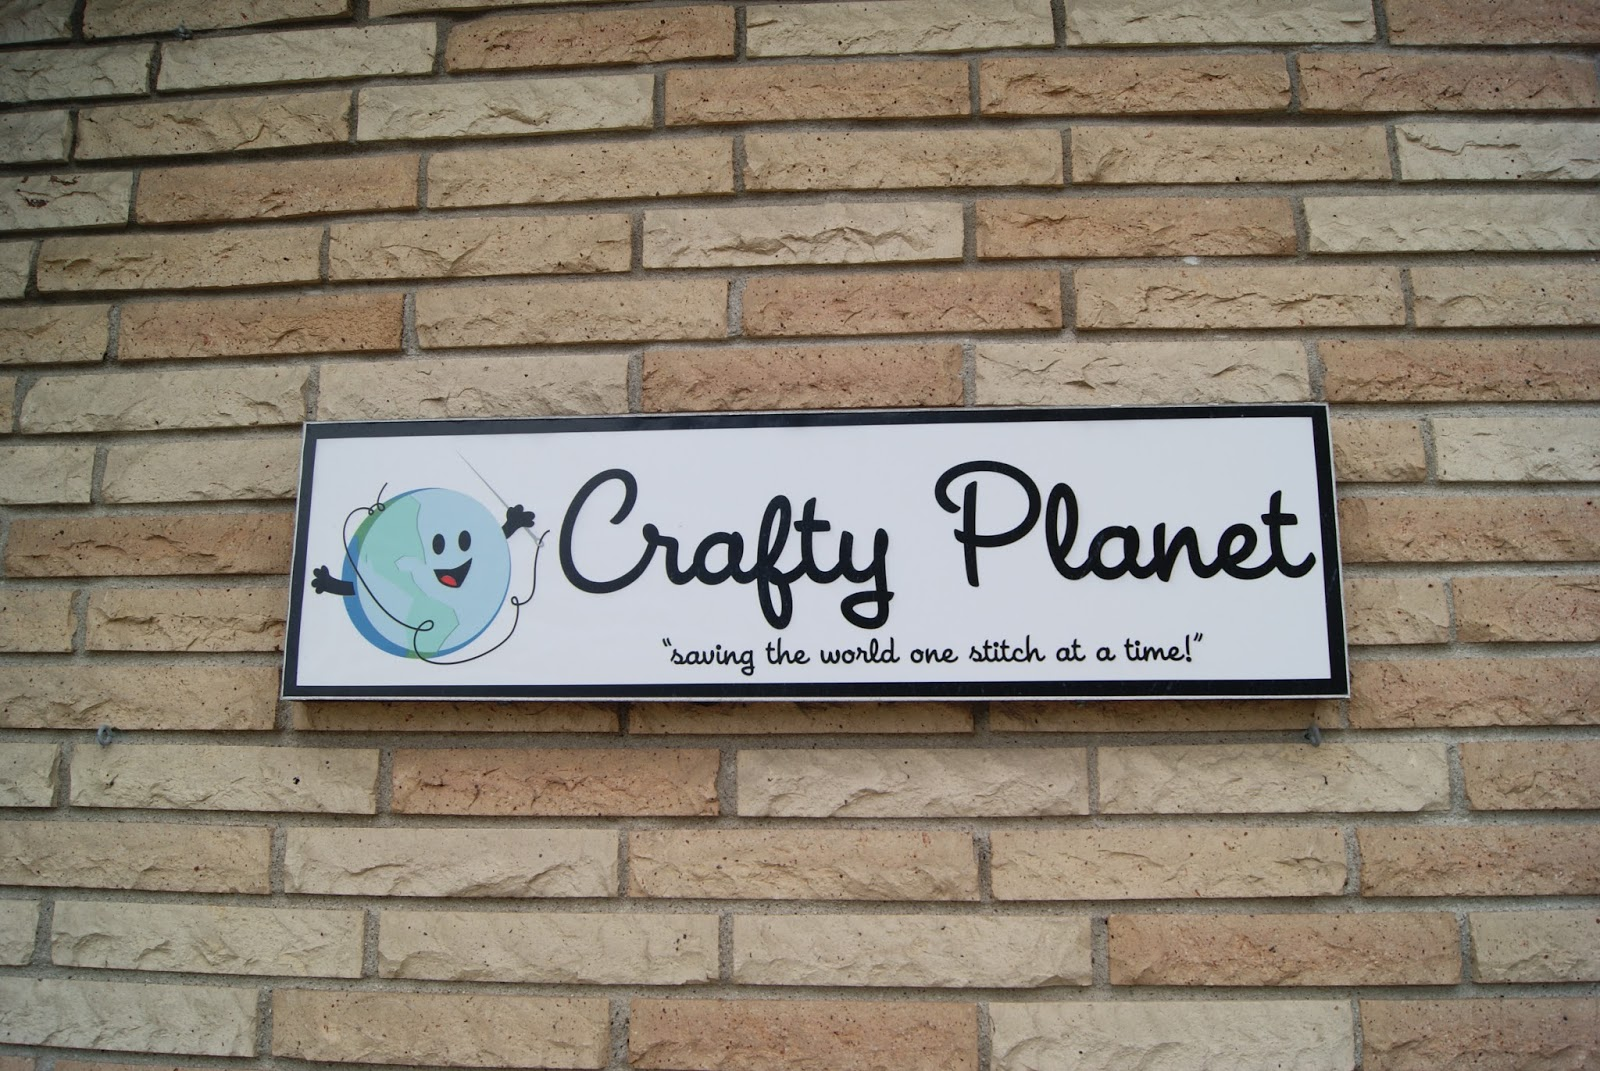 Crafty Planet in Minneapolis, Minnesota